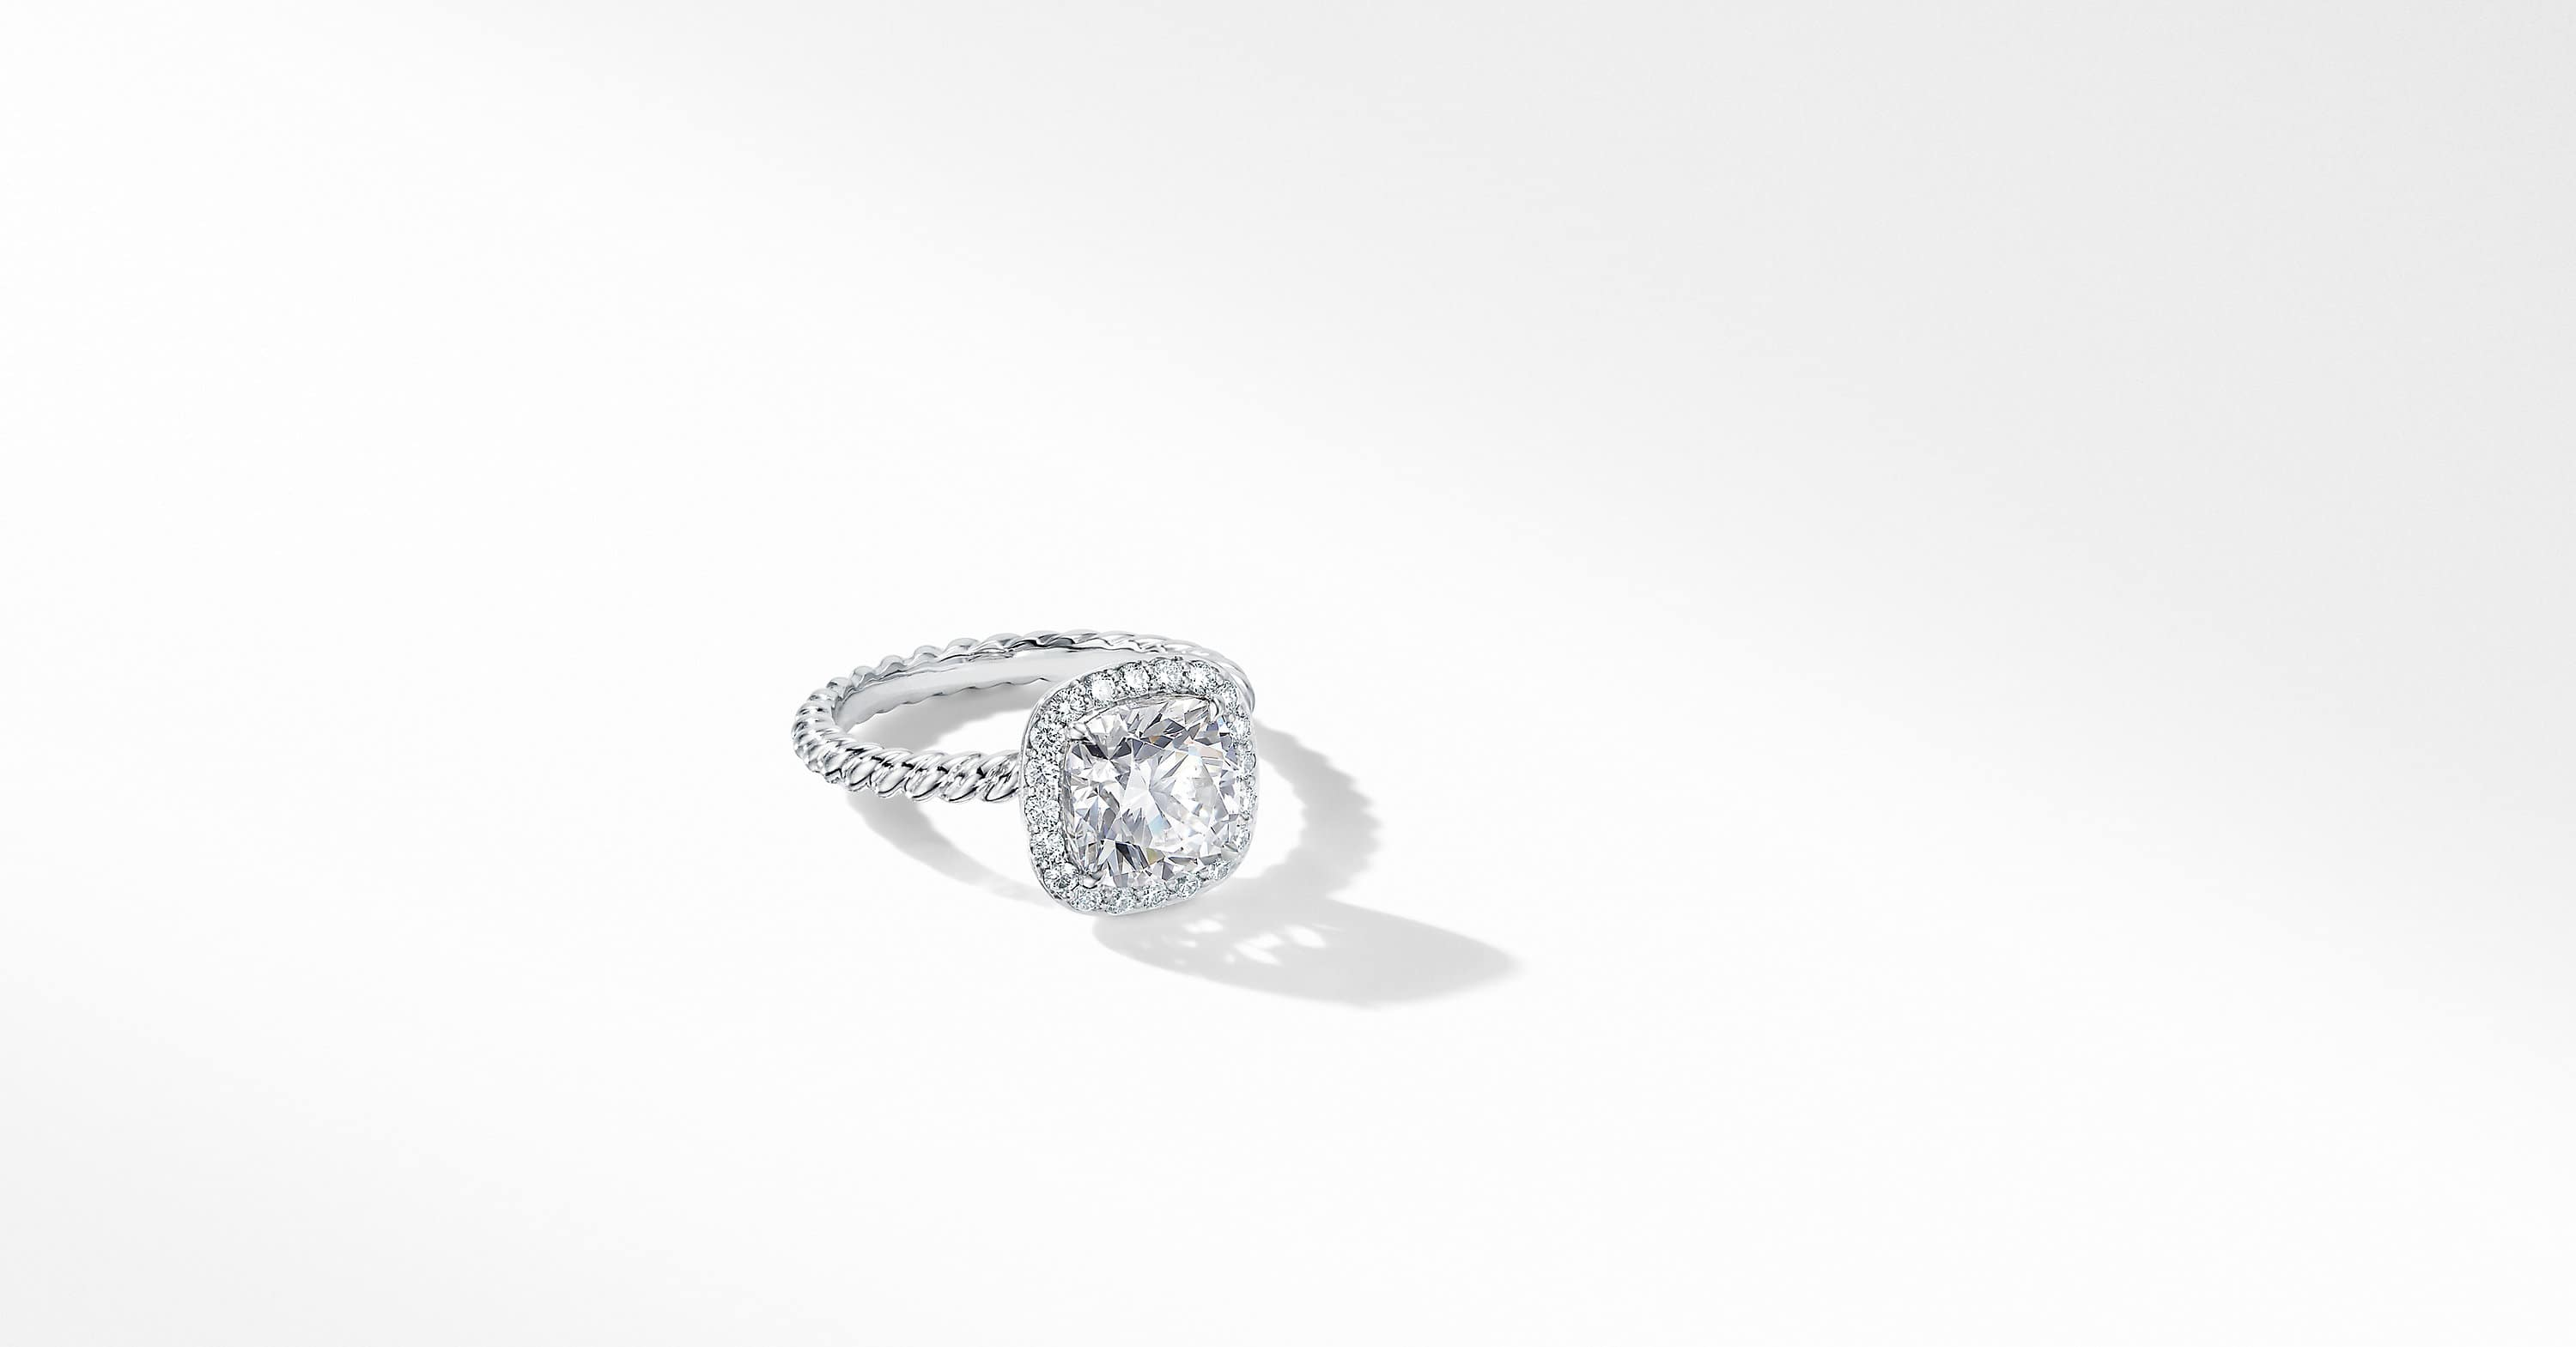 DY Capri Engagement Ring in Platinum, Cushion